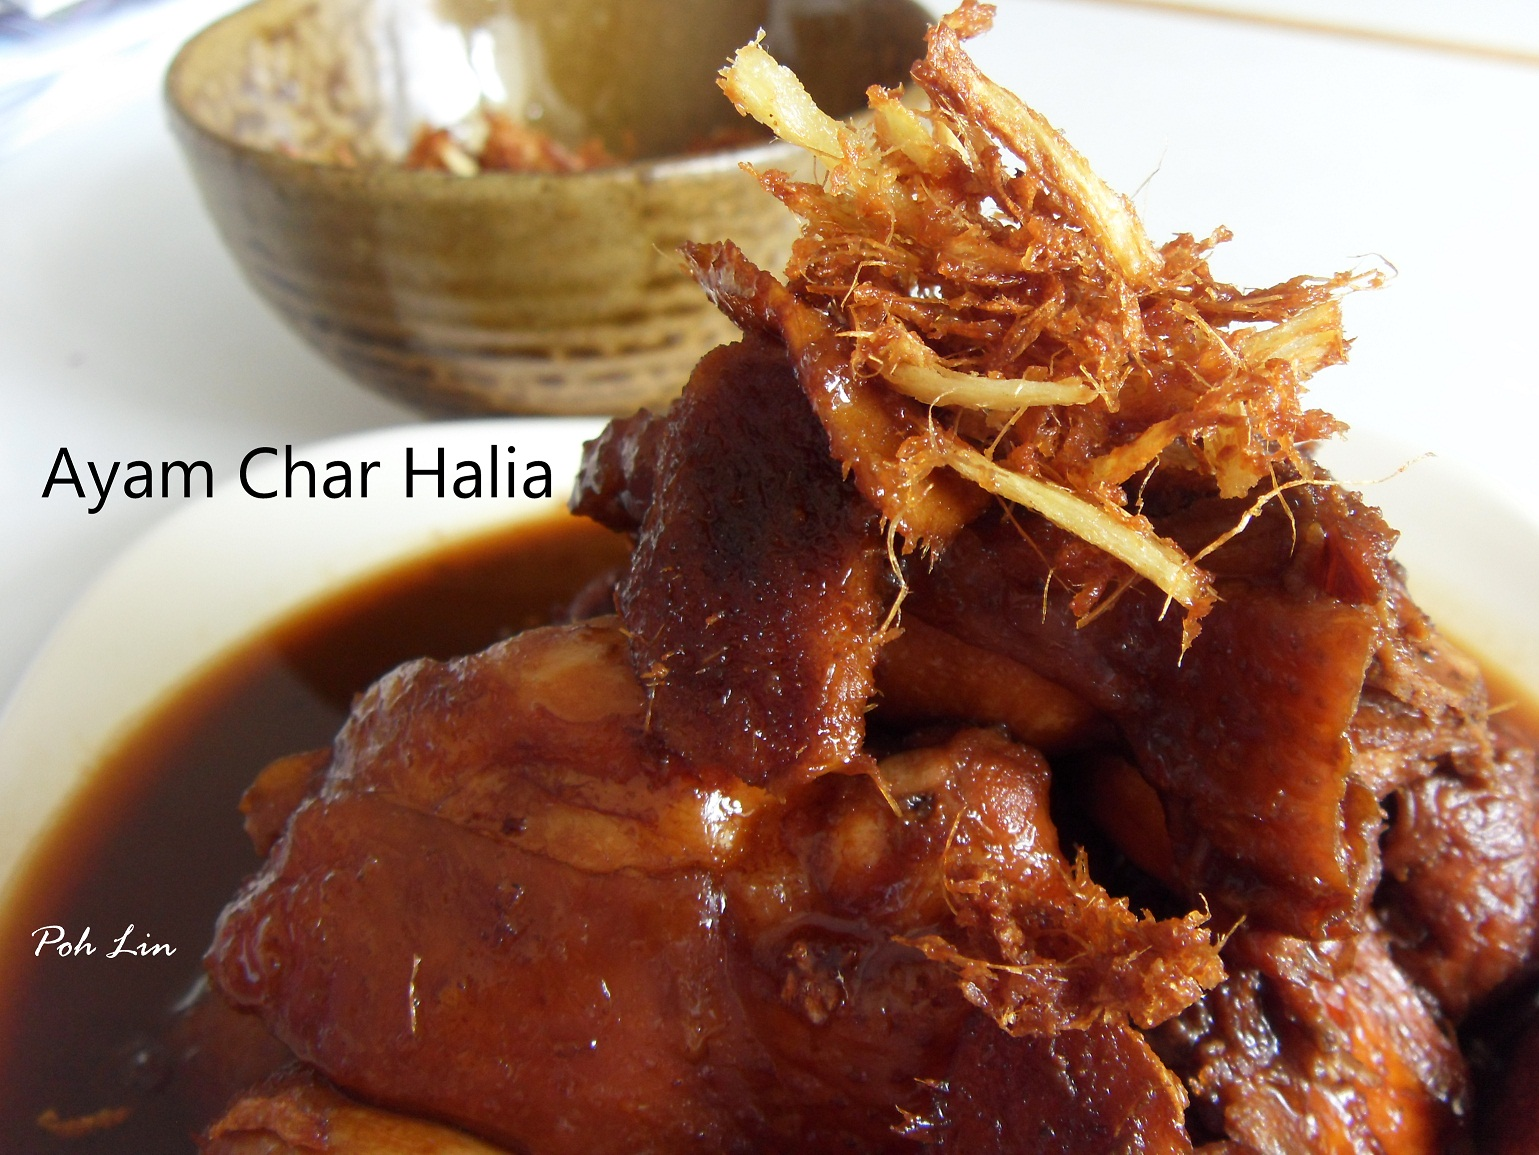 Ayam Char Halia (Drunken Chicken)